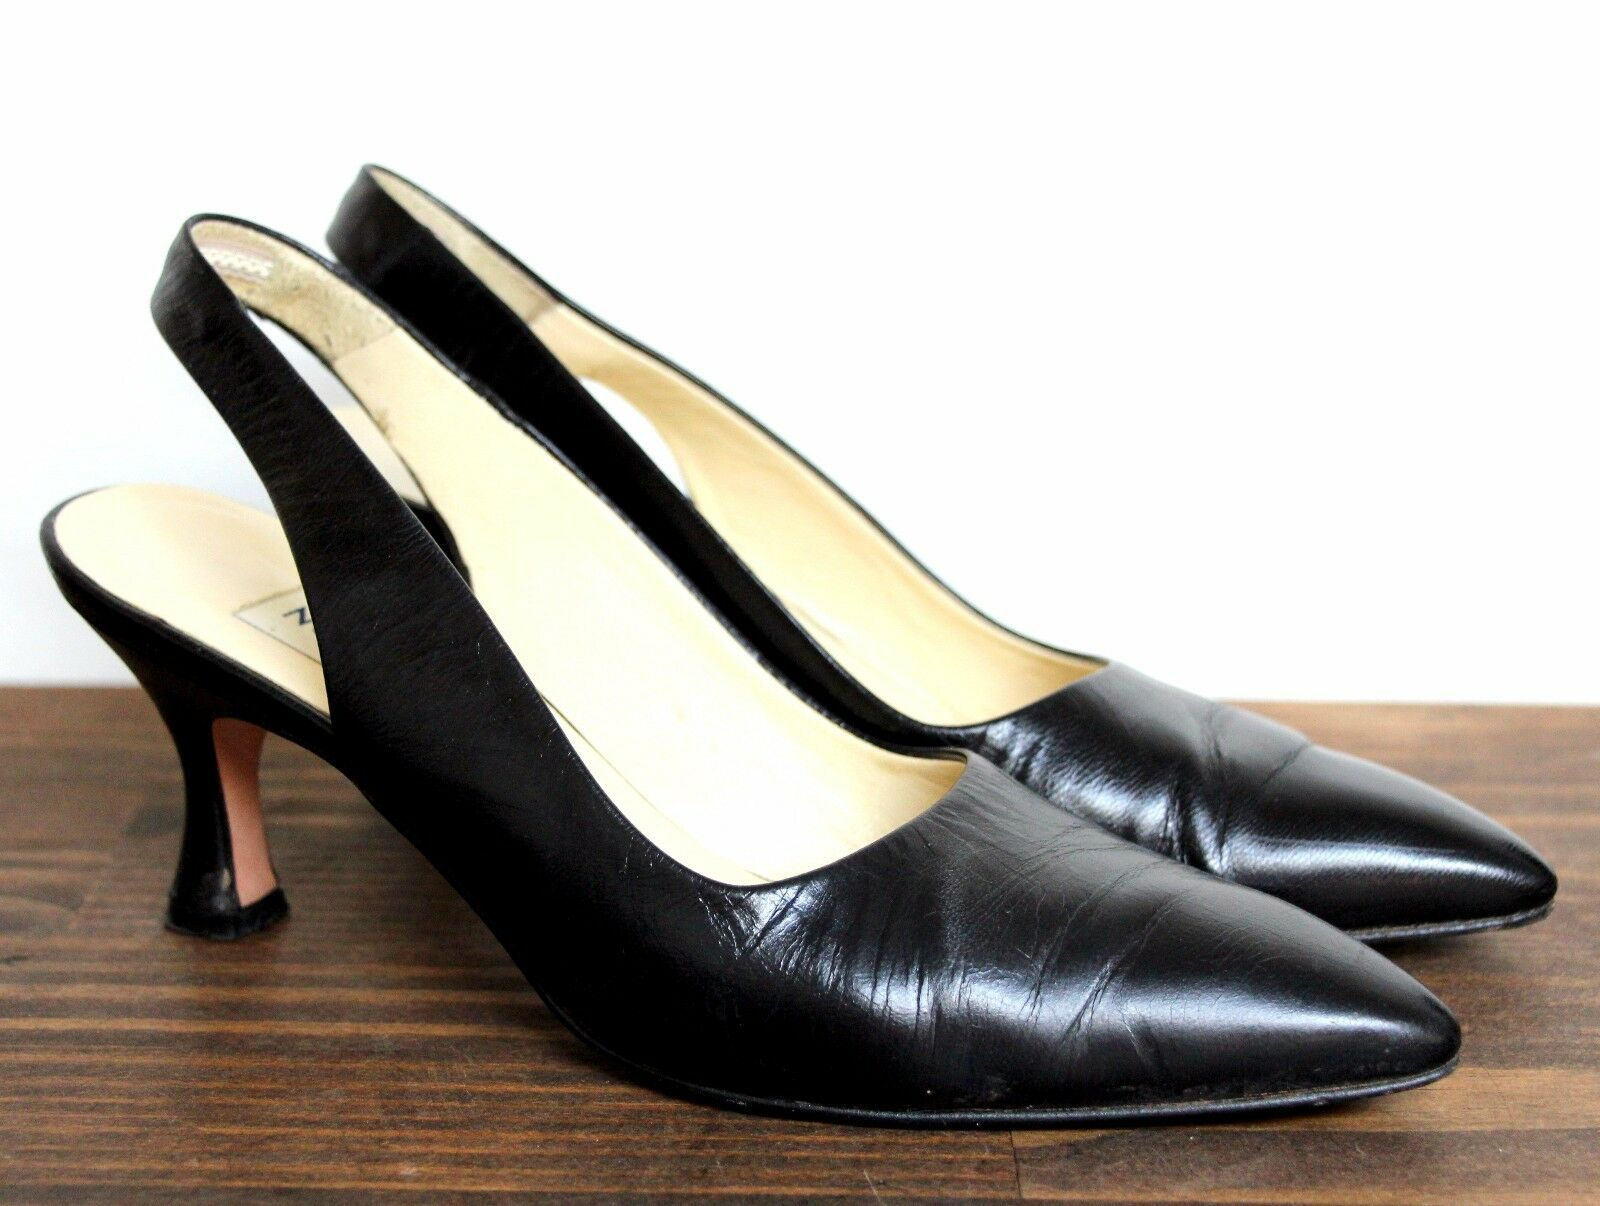 VINTAGE NORDSTROM ITALY PUMPS BLACK GENUINE LEATHER SLINGBACK PUMPS ITALY MED HEEL SHOES 7N cd0322